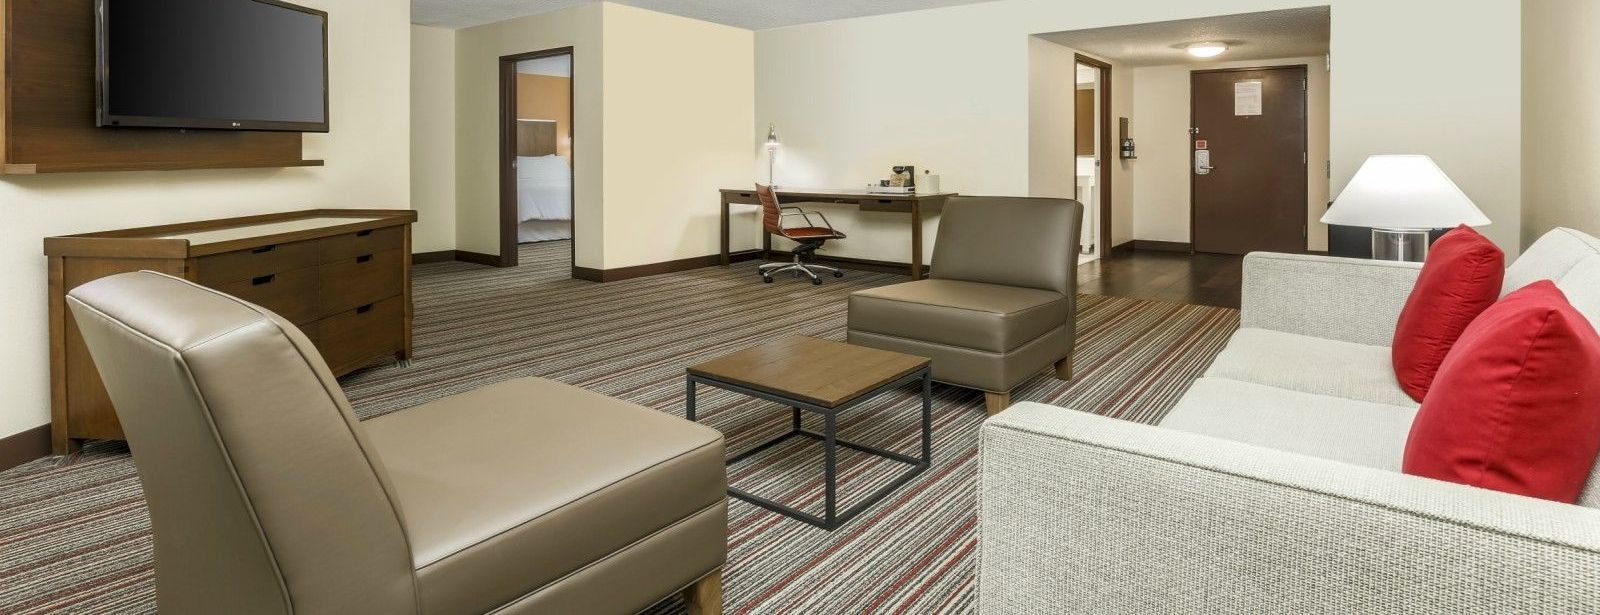 Bentonville, AR Accommodations - Executive Suites Living Room